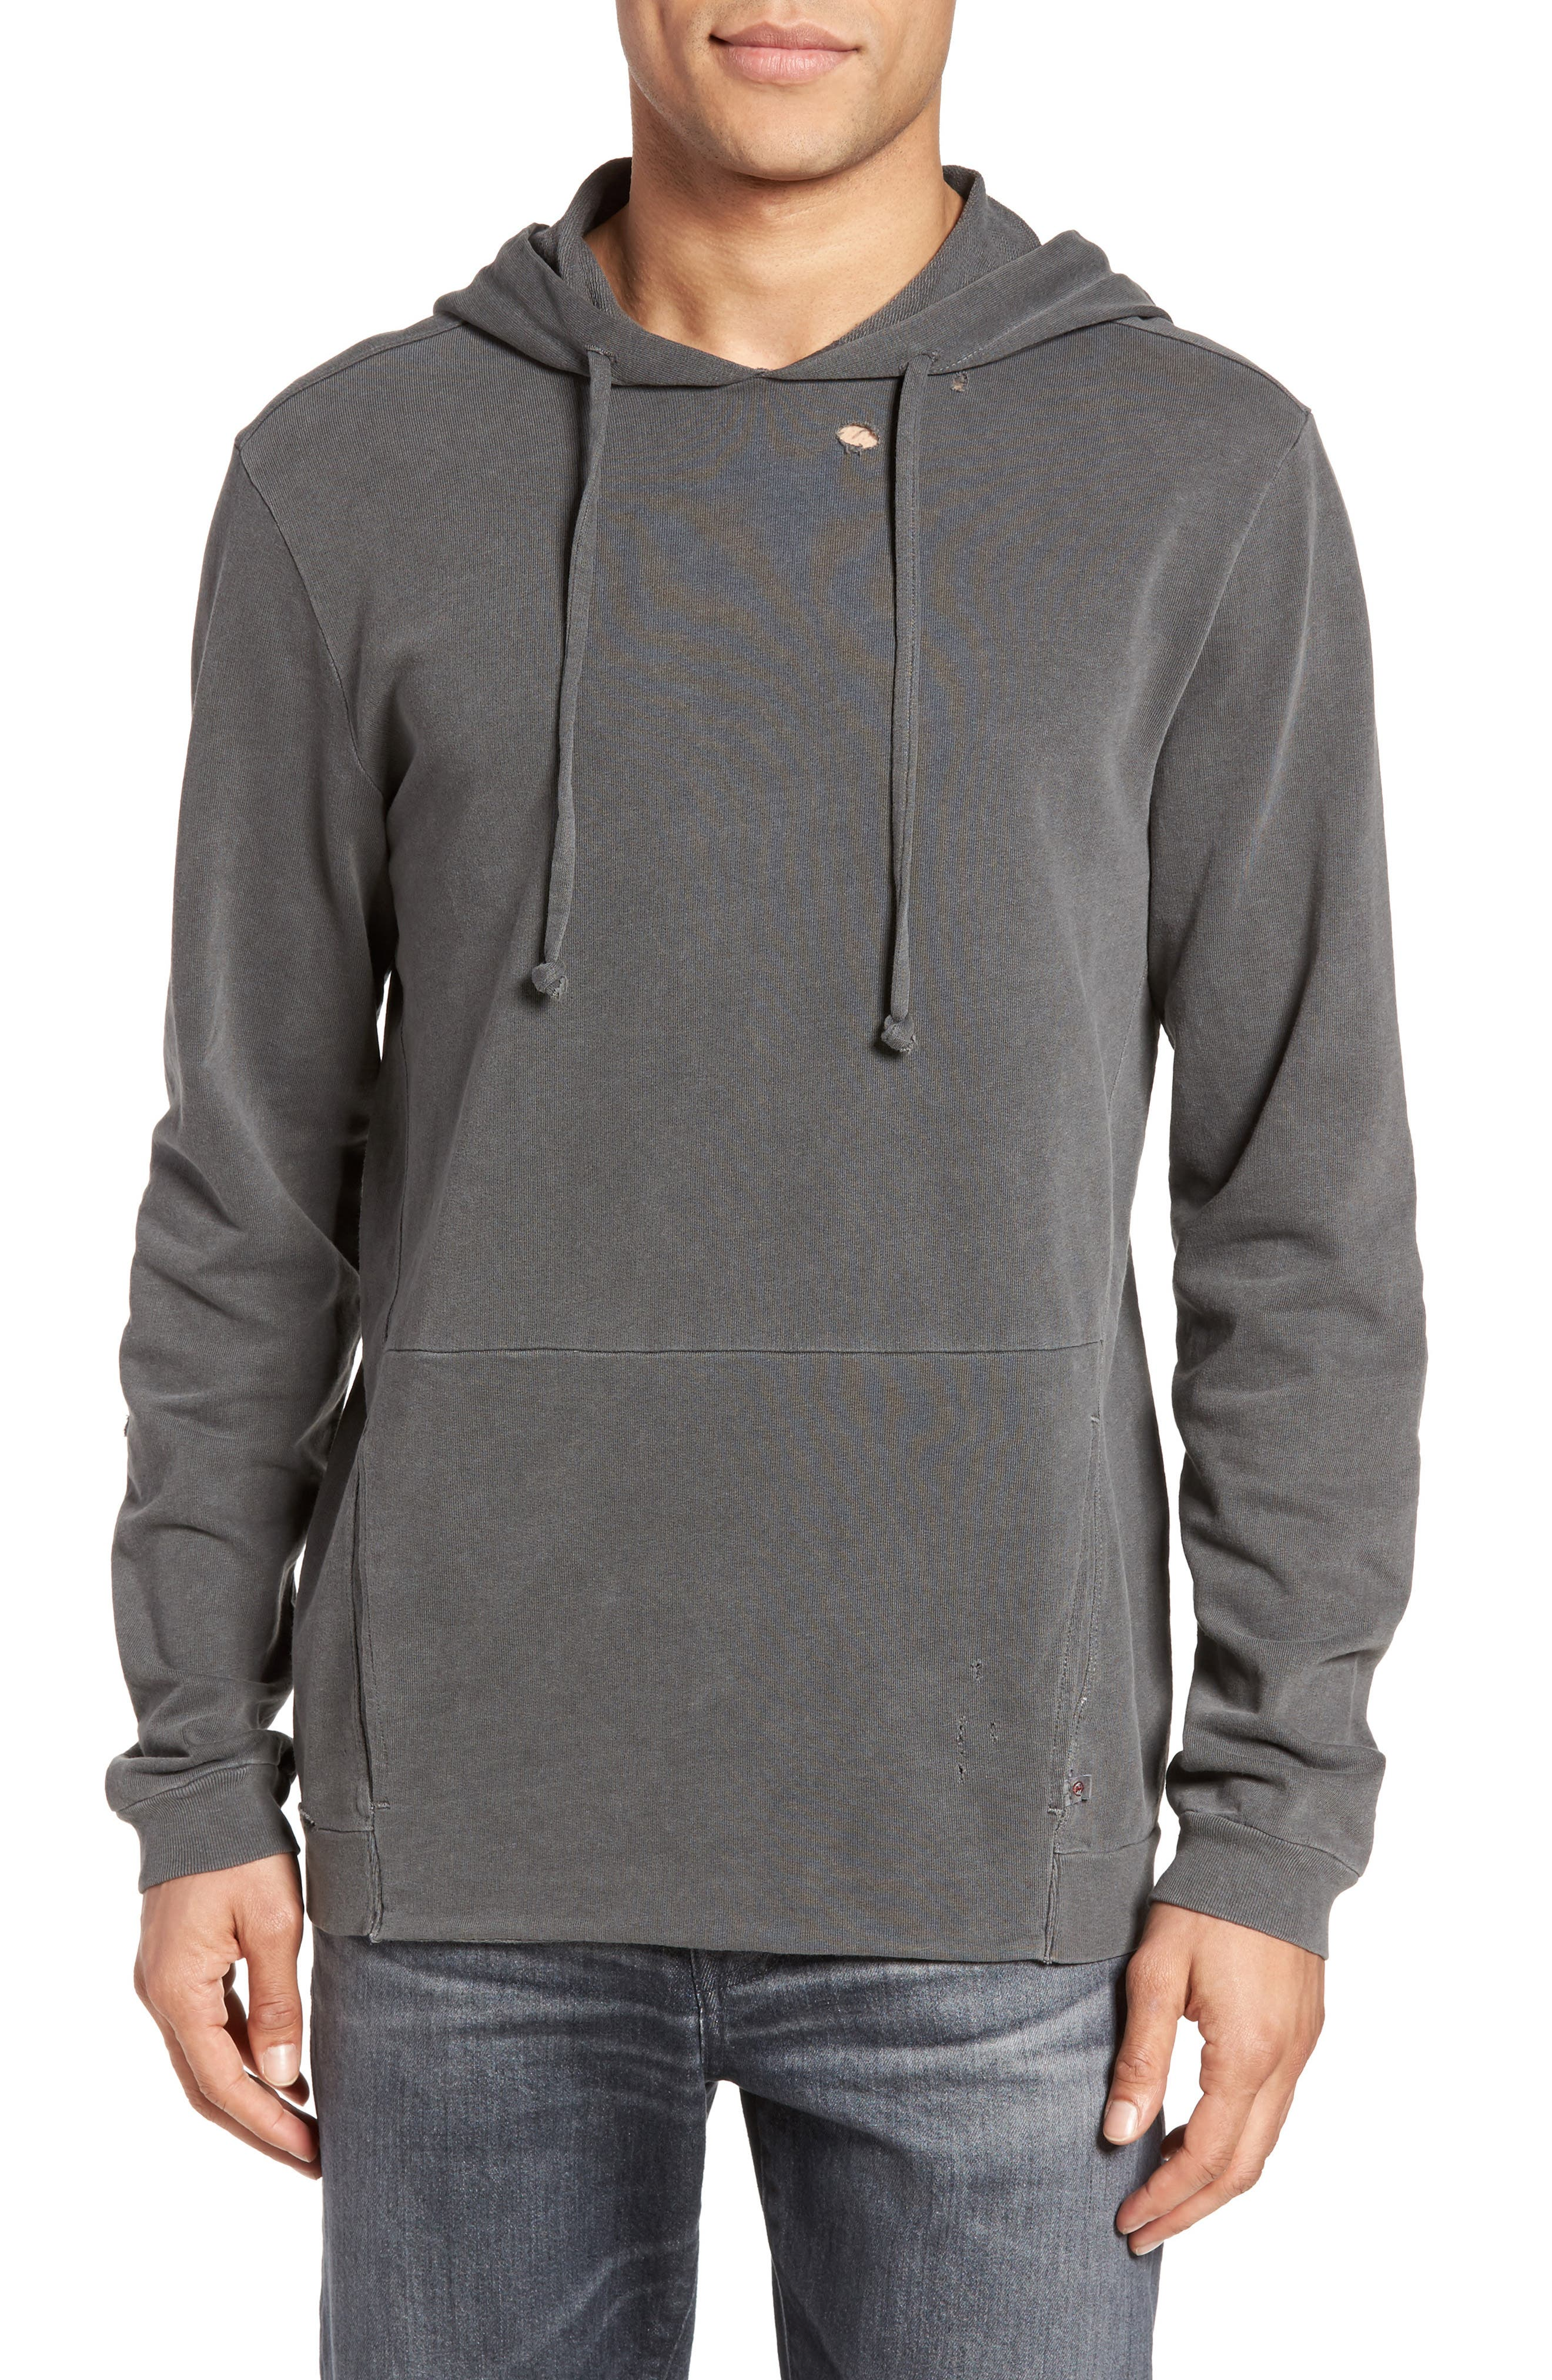 Eloi Pullover Hoodie,                         Main,                         color, 022